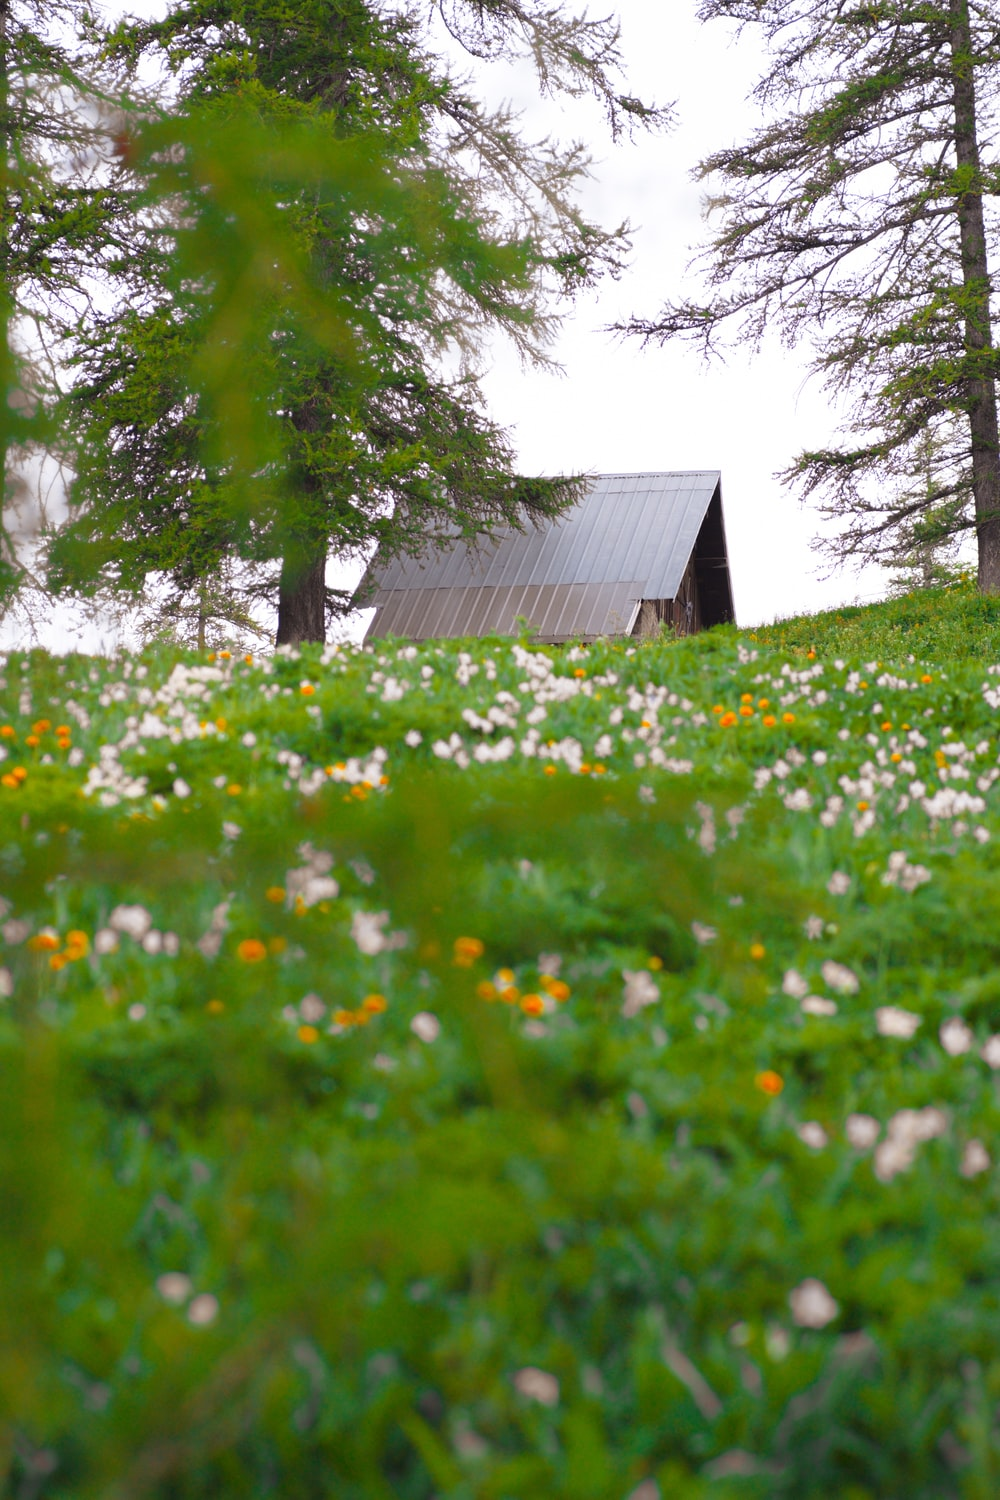 brown wooden house in the middle of green grass field